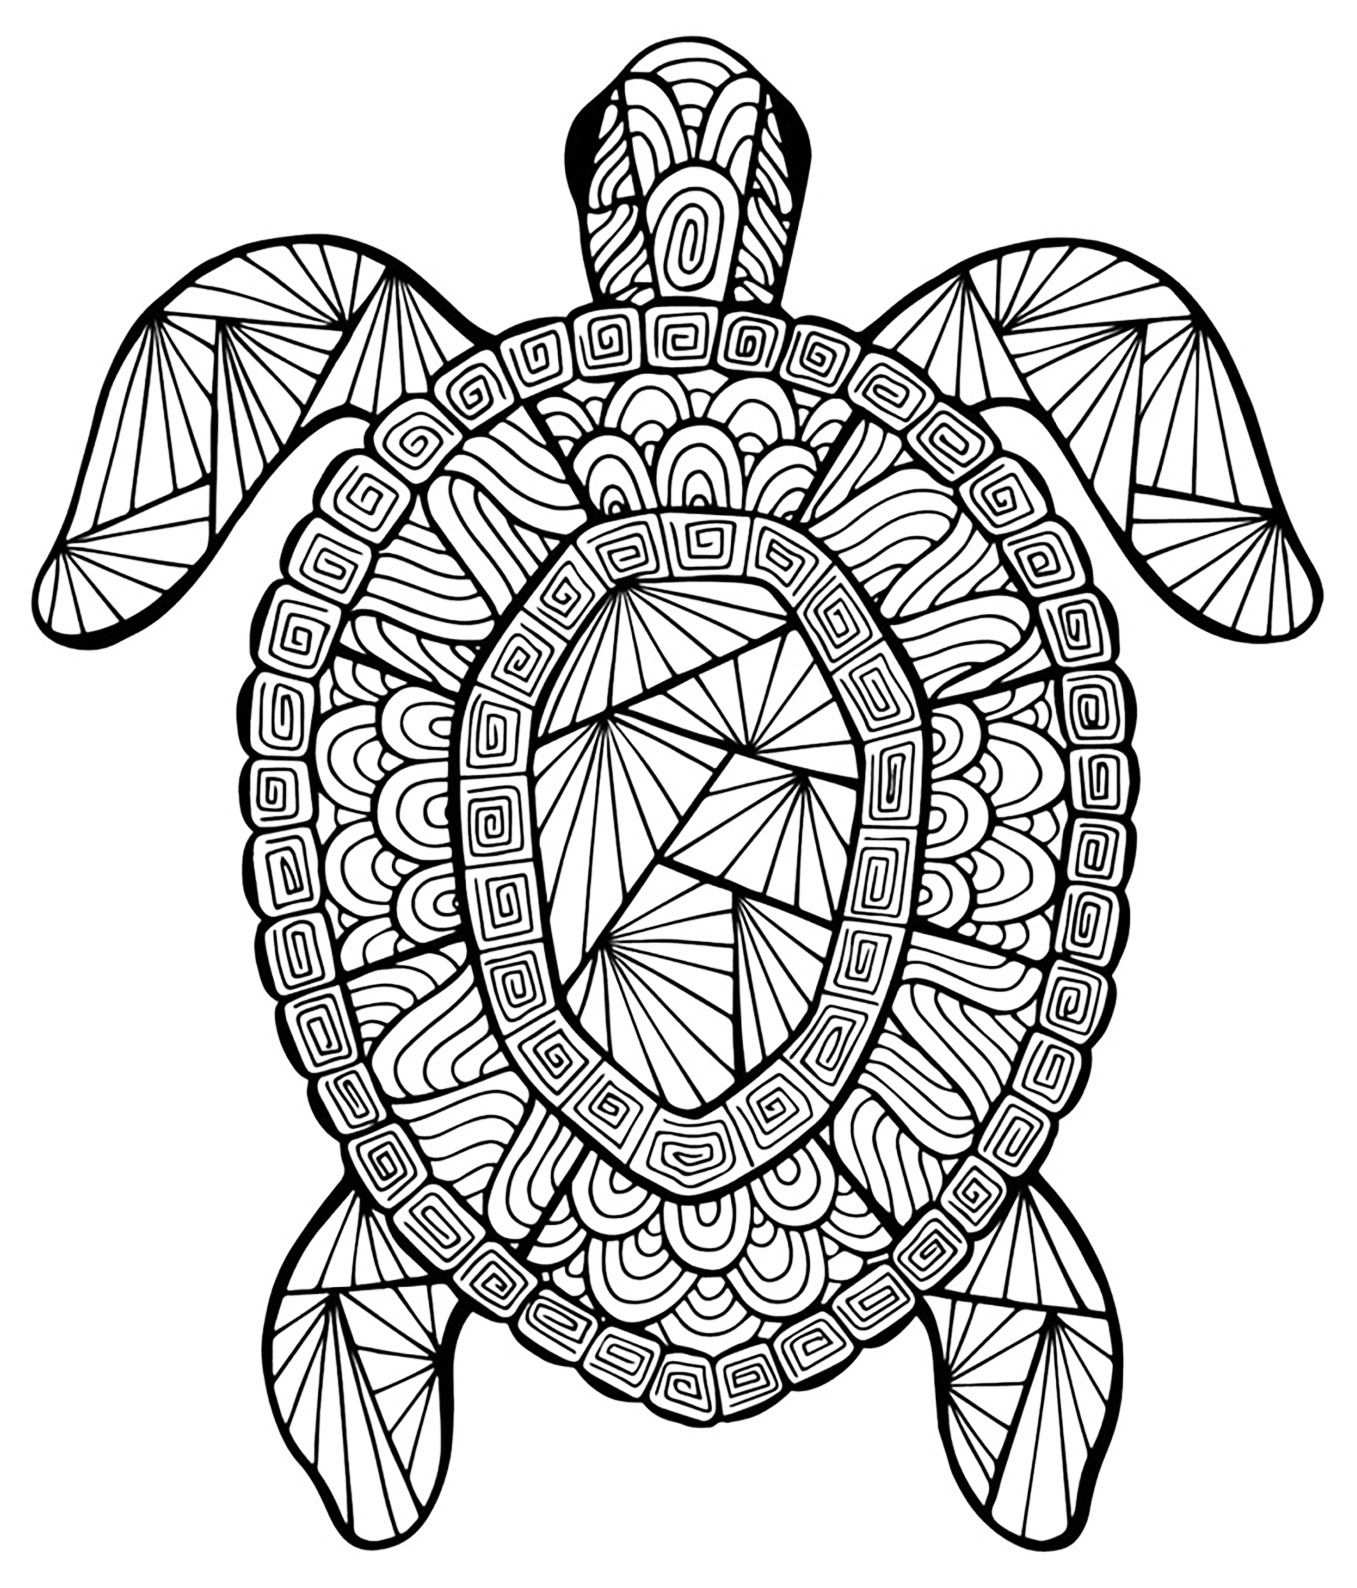 Incredible Turtle Turtles Coloring Pages For Adults Just Color